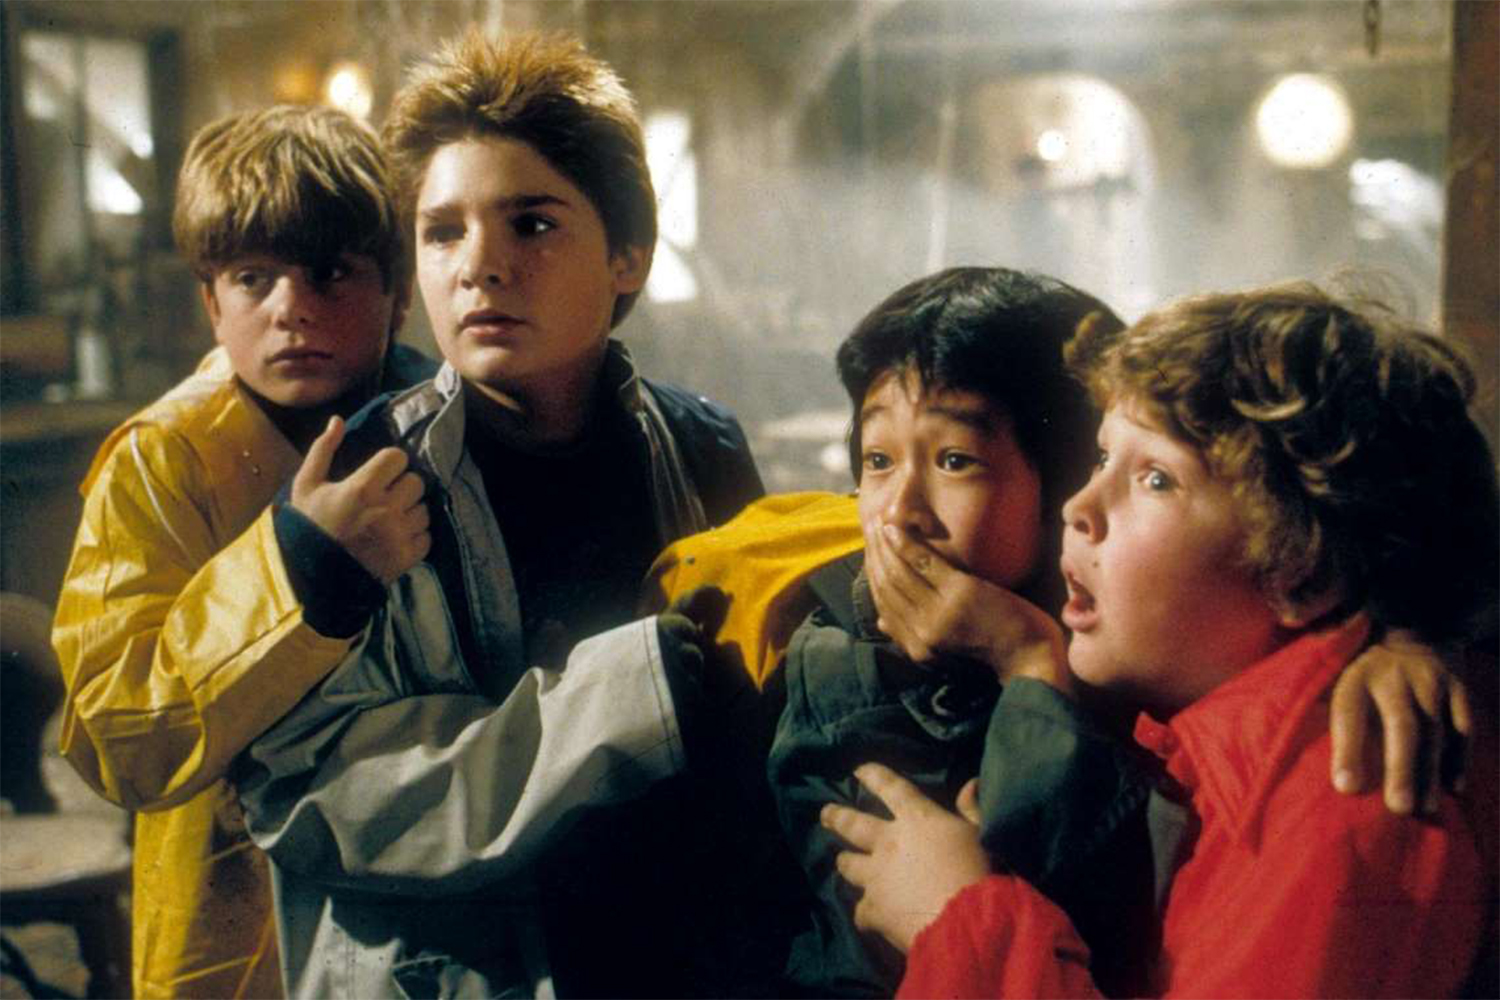 The Goonies 1985 movie still